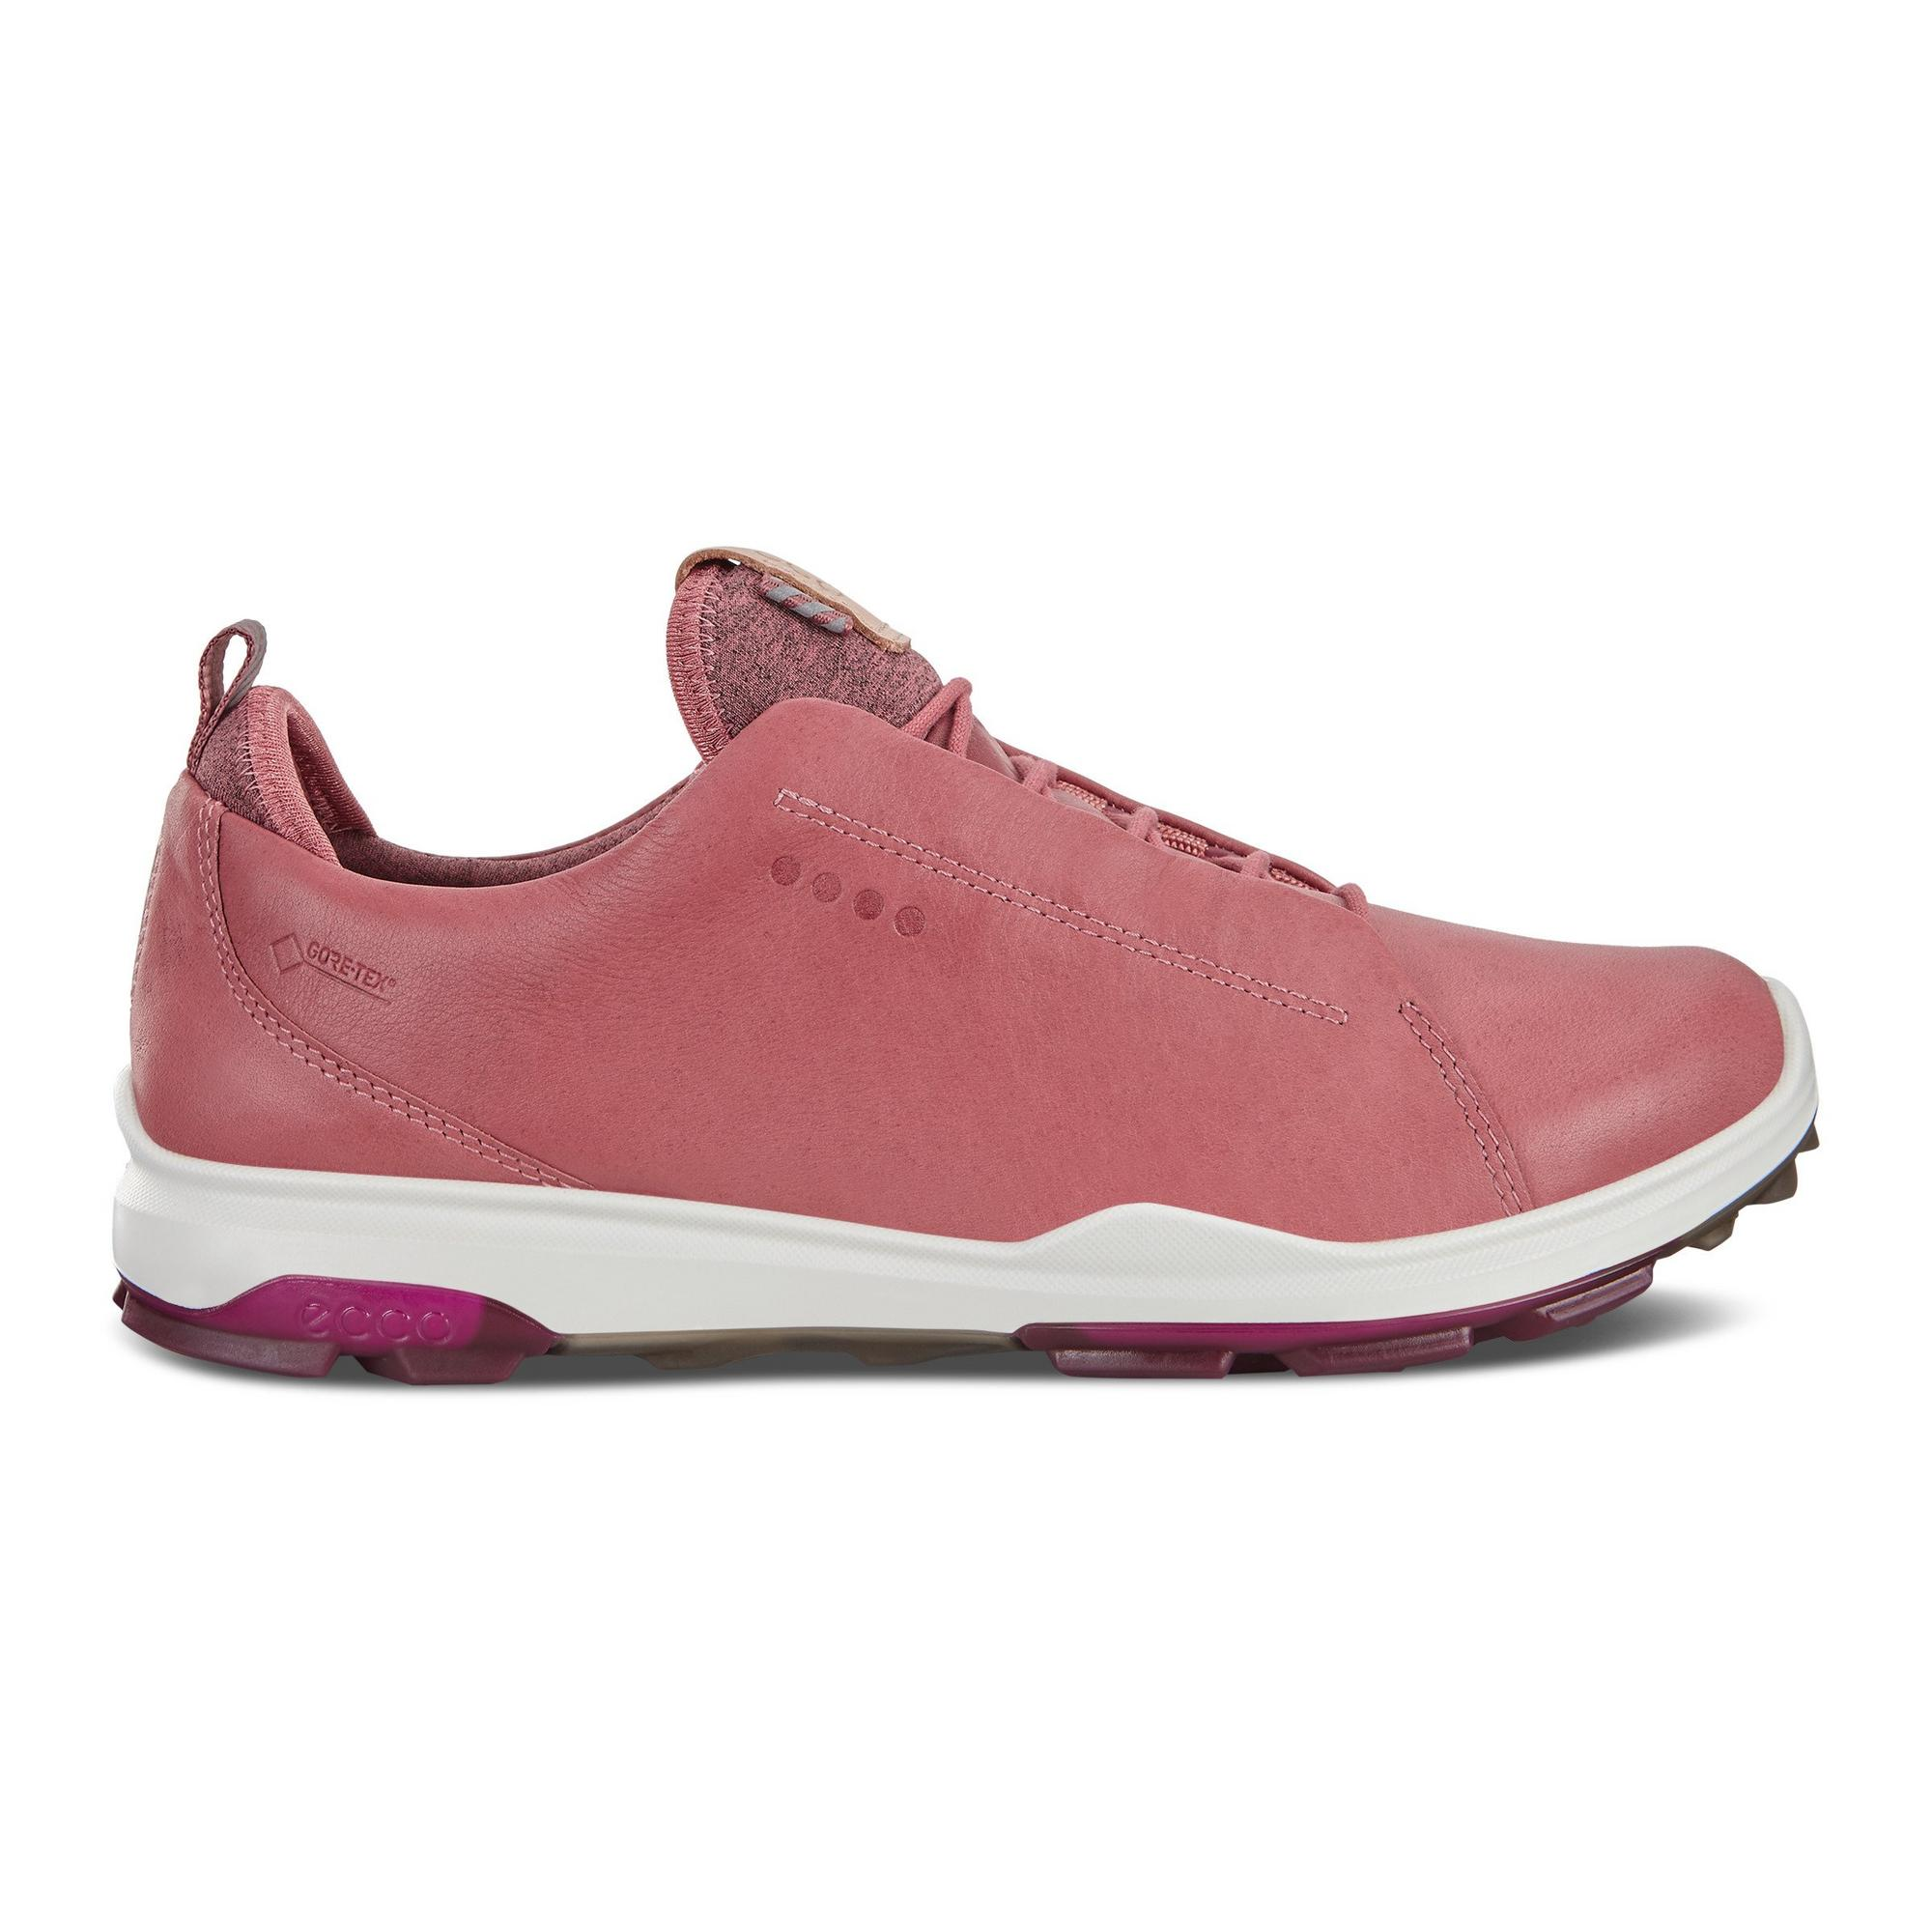 Goretex Biom Hybrid 3 Recessed Lace Spikeless Golf Shoe - Pink